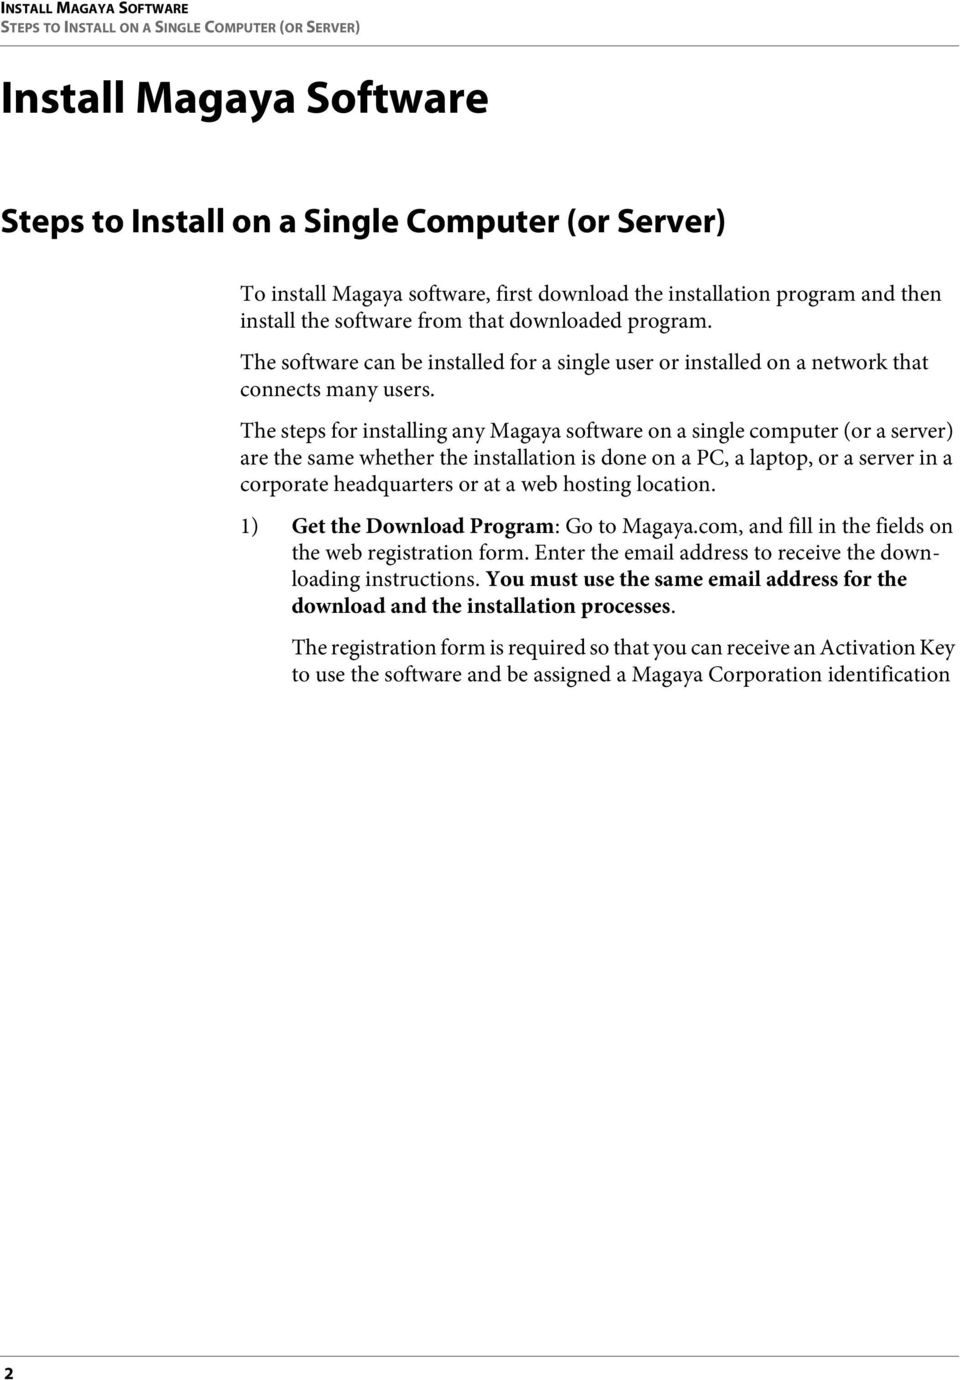 The steps for installing any Magaya software on a single computer (or a server) are the same whether the installation is done on a PC, a laptop, or a server in a corporate headquarters or at a web